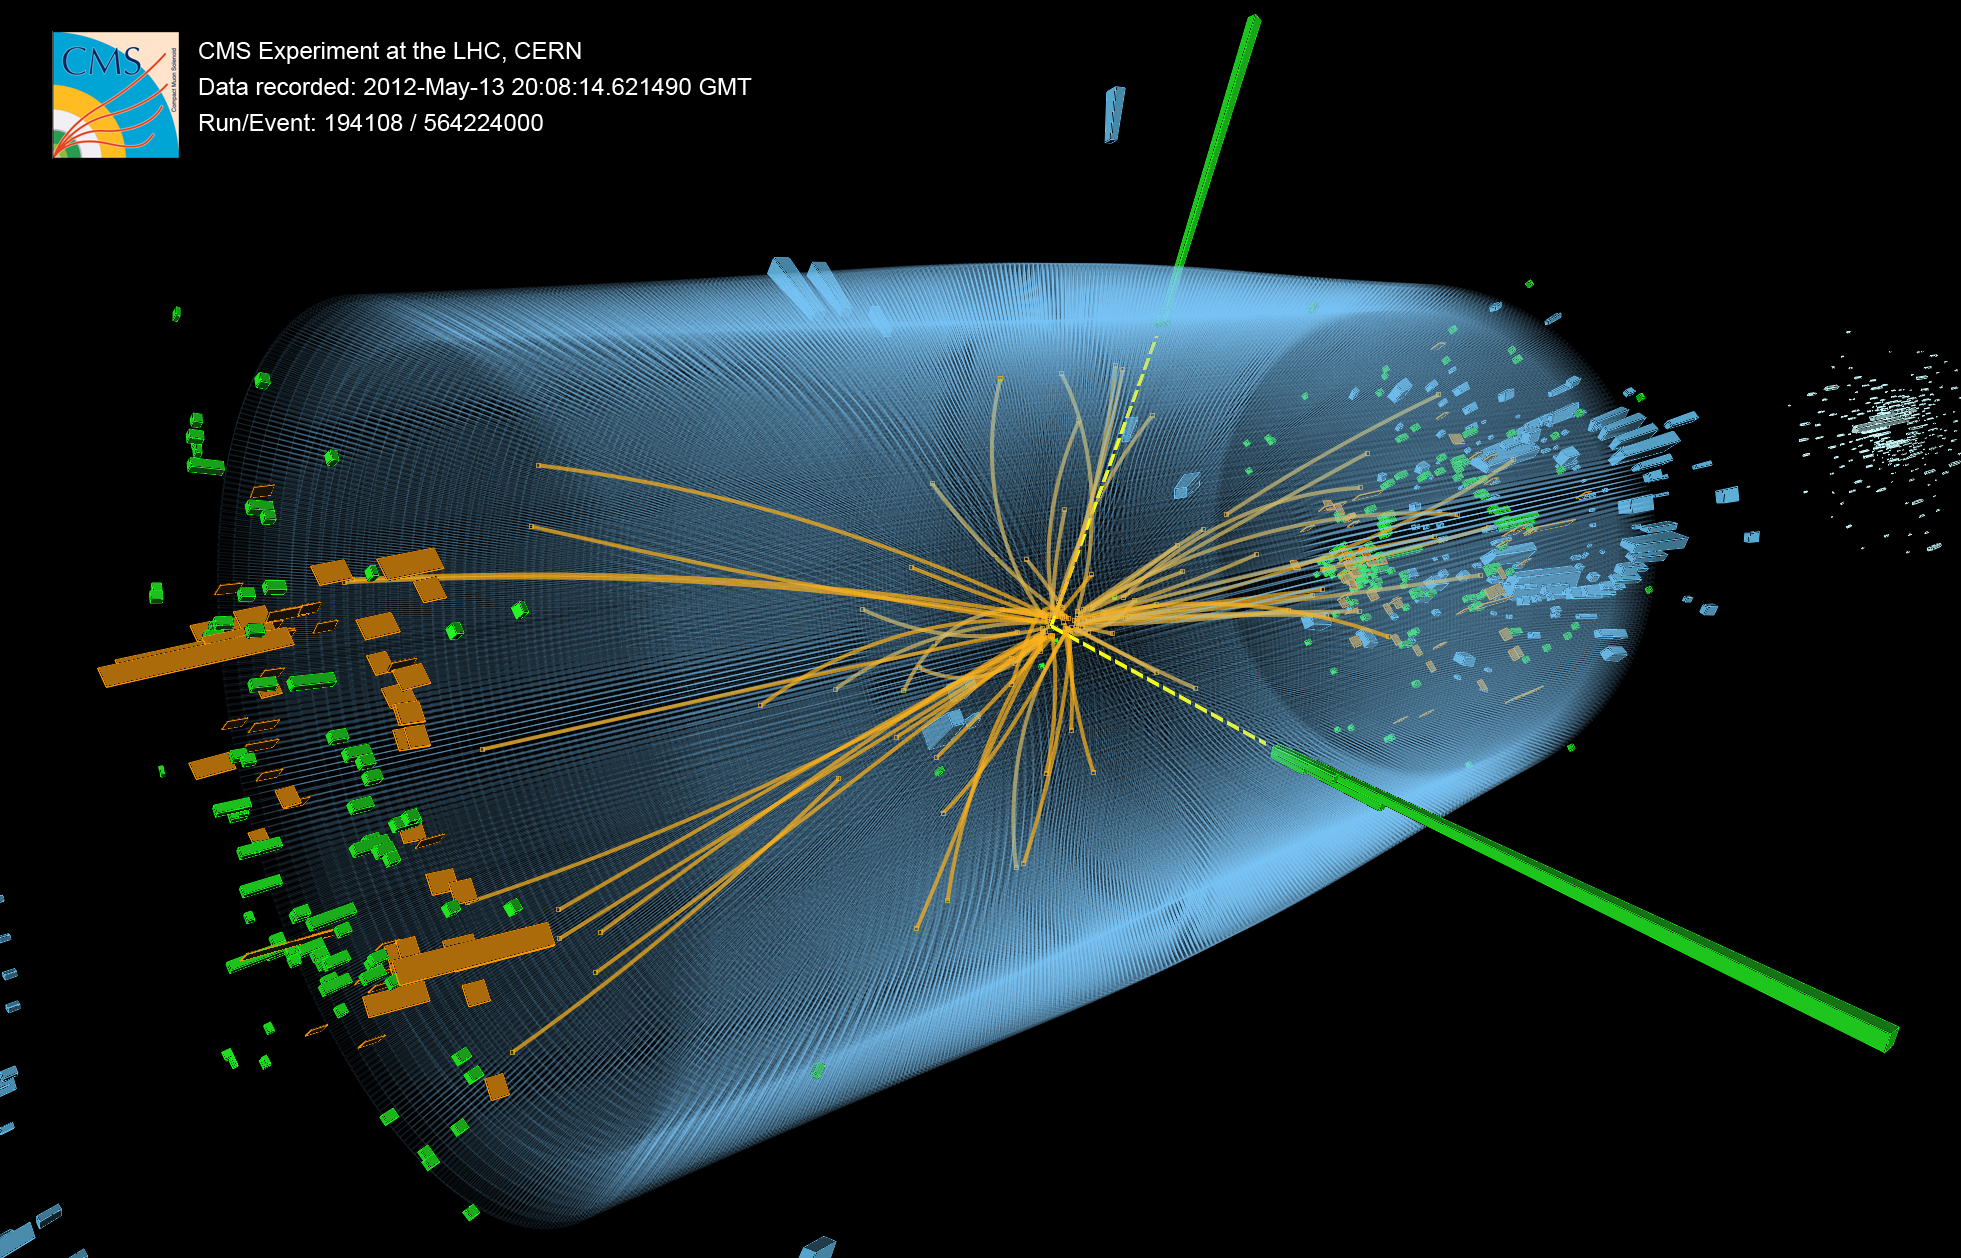 CMS_Higgs_Boson_Observation_Wide